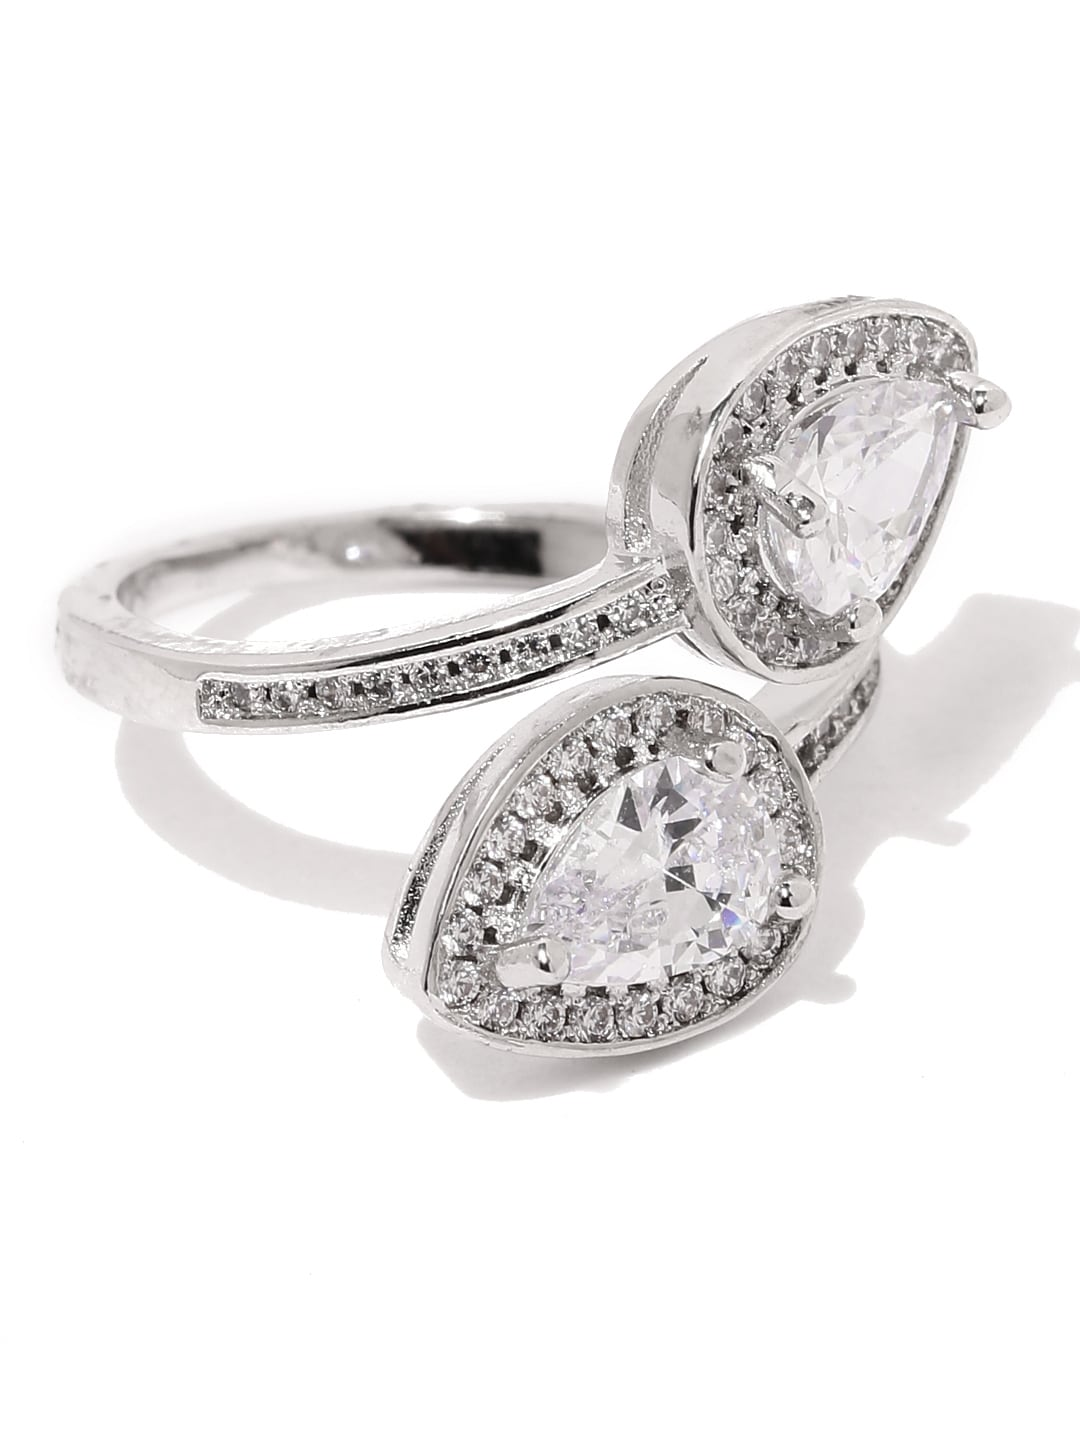 77b979560 Rubans Casual Ring - Buy Rubans Casual Ring online in India